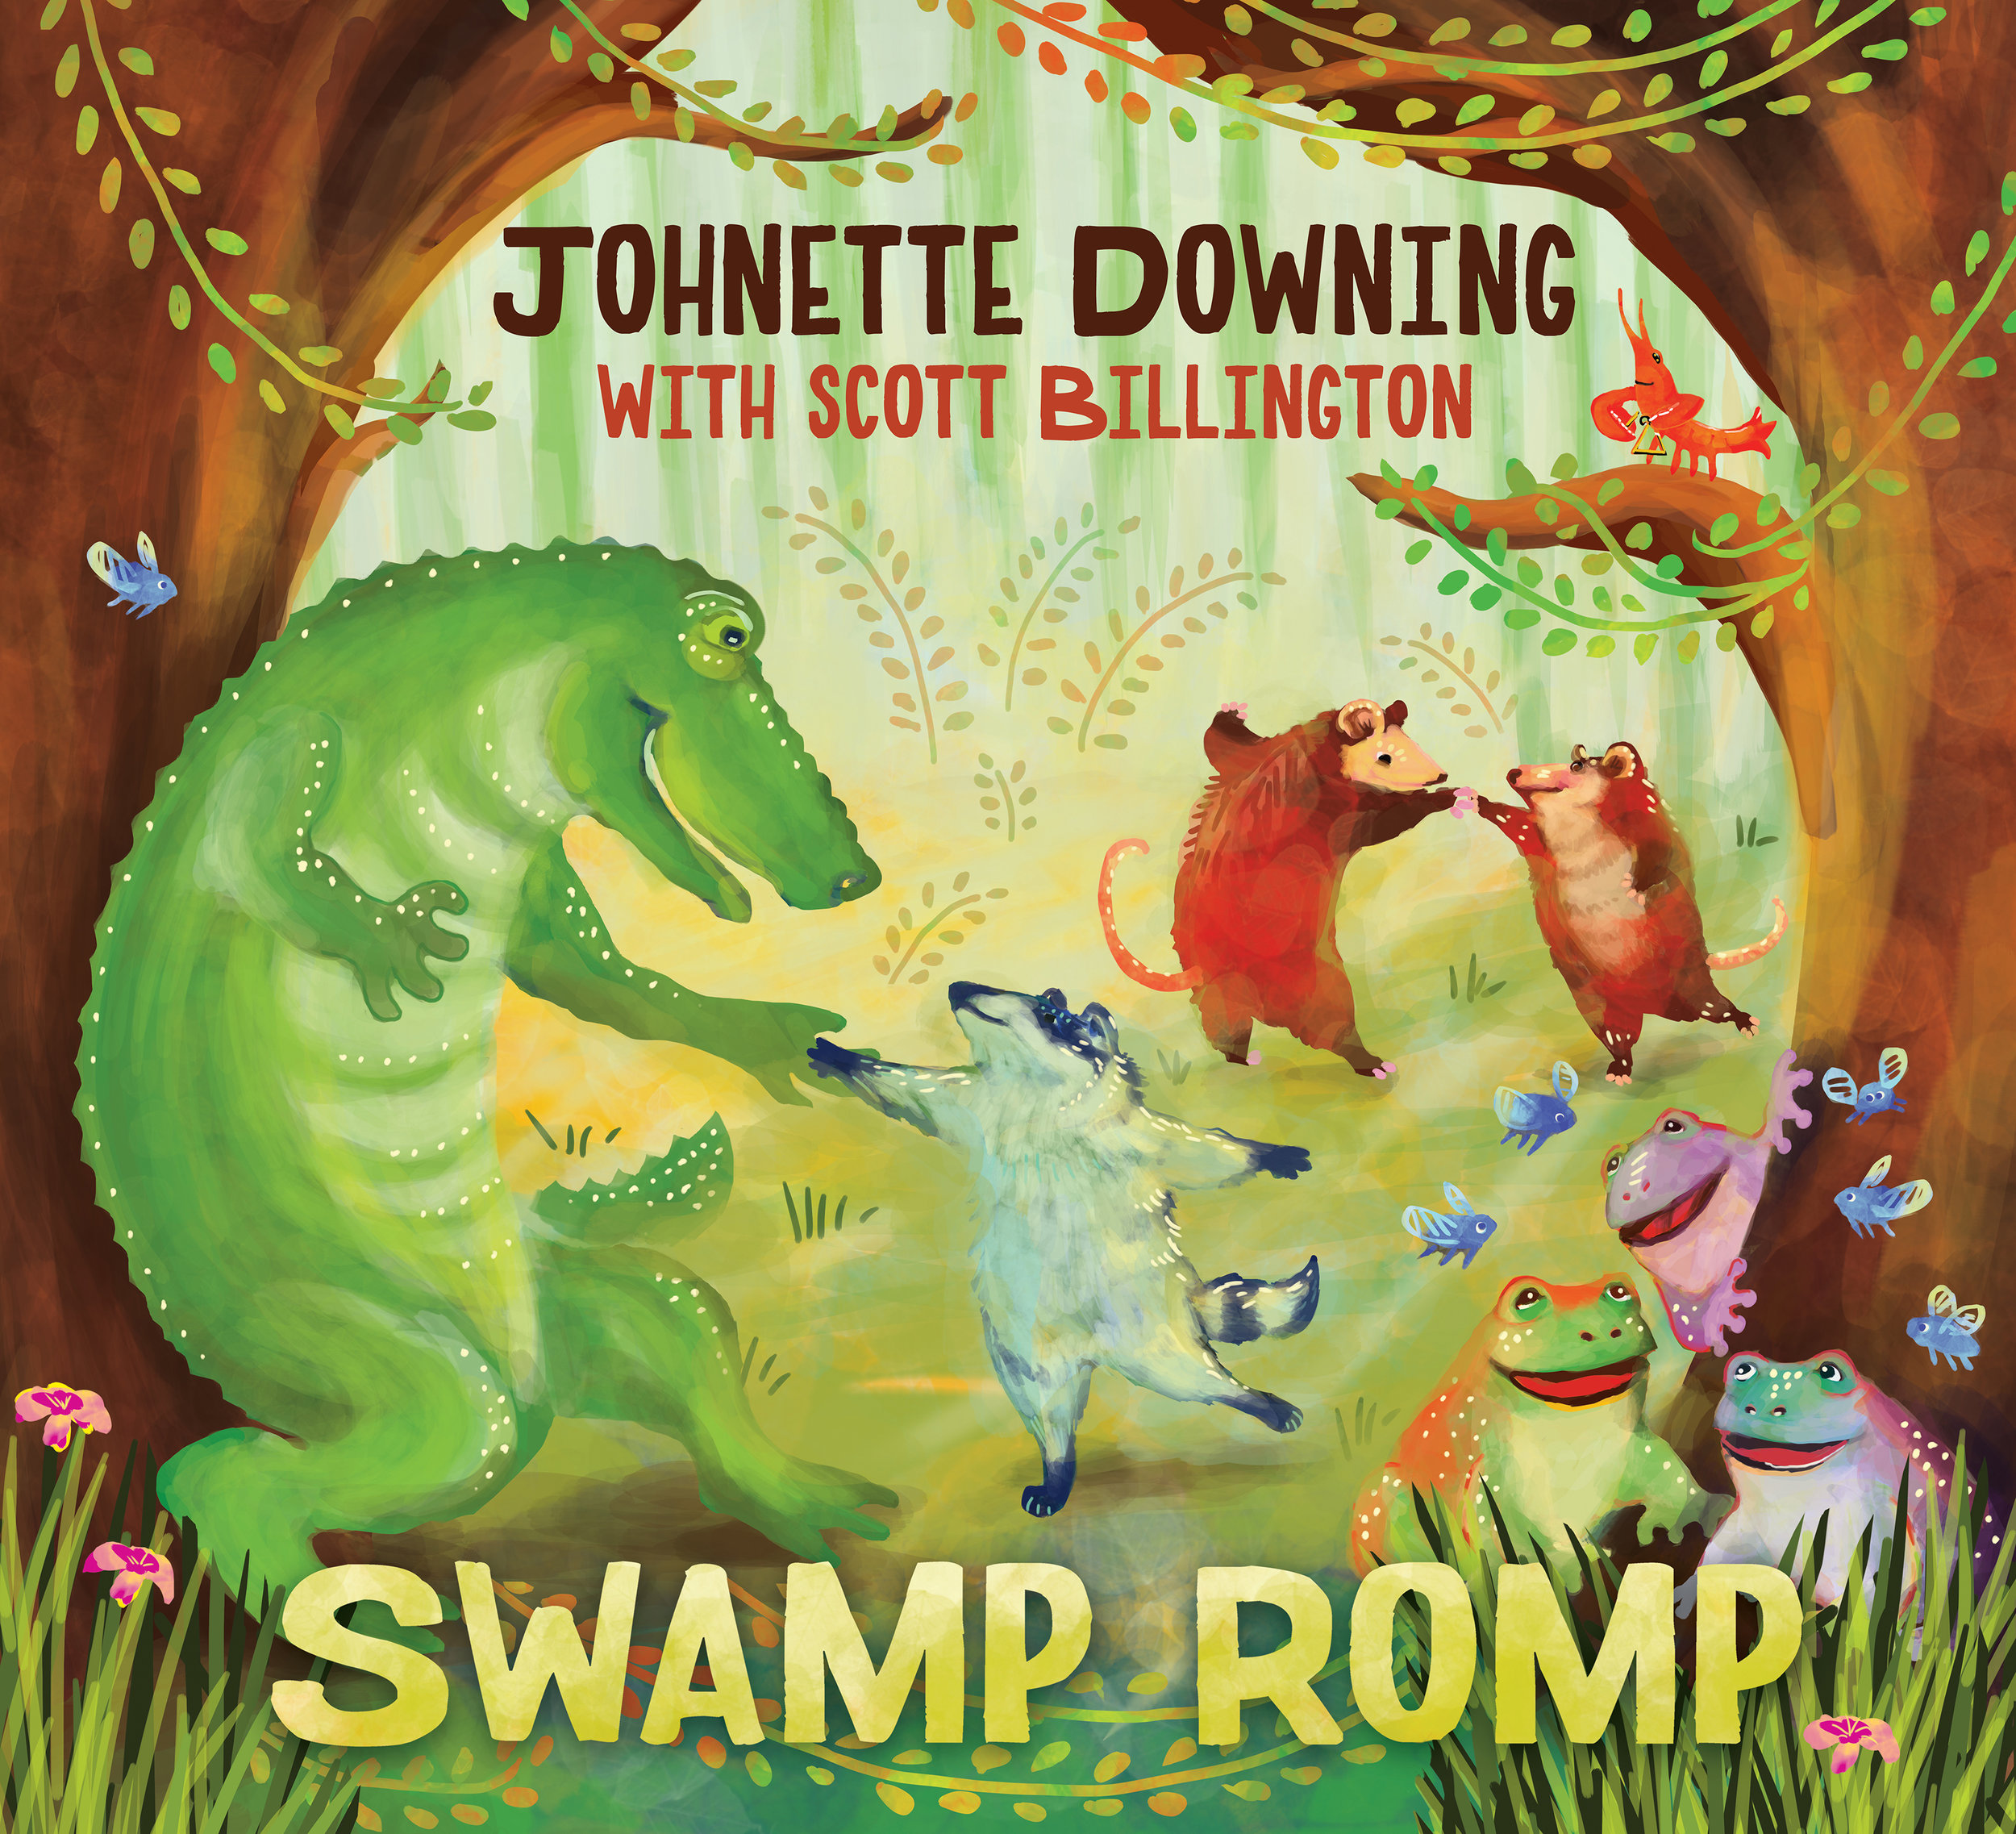 Swamp Romp | Johnette Downing with Scott Billington